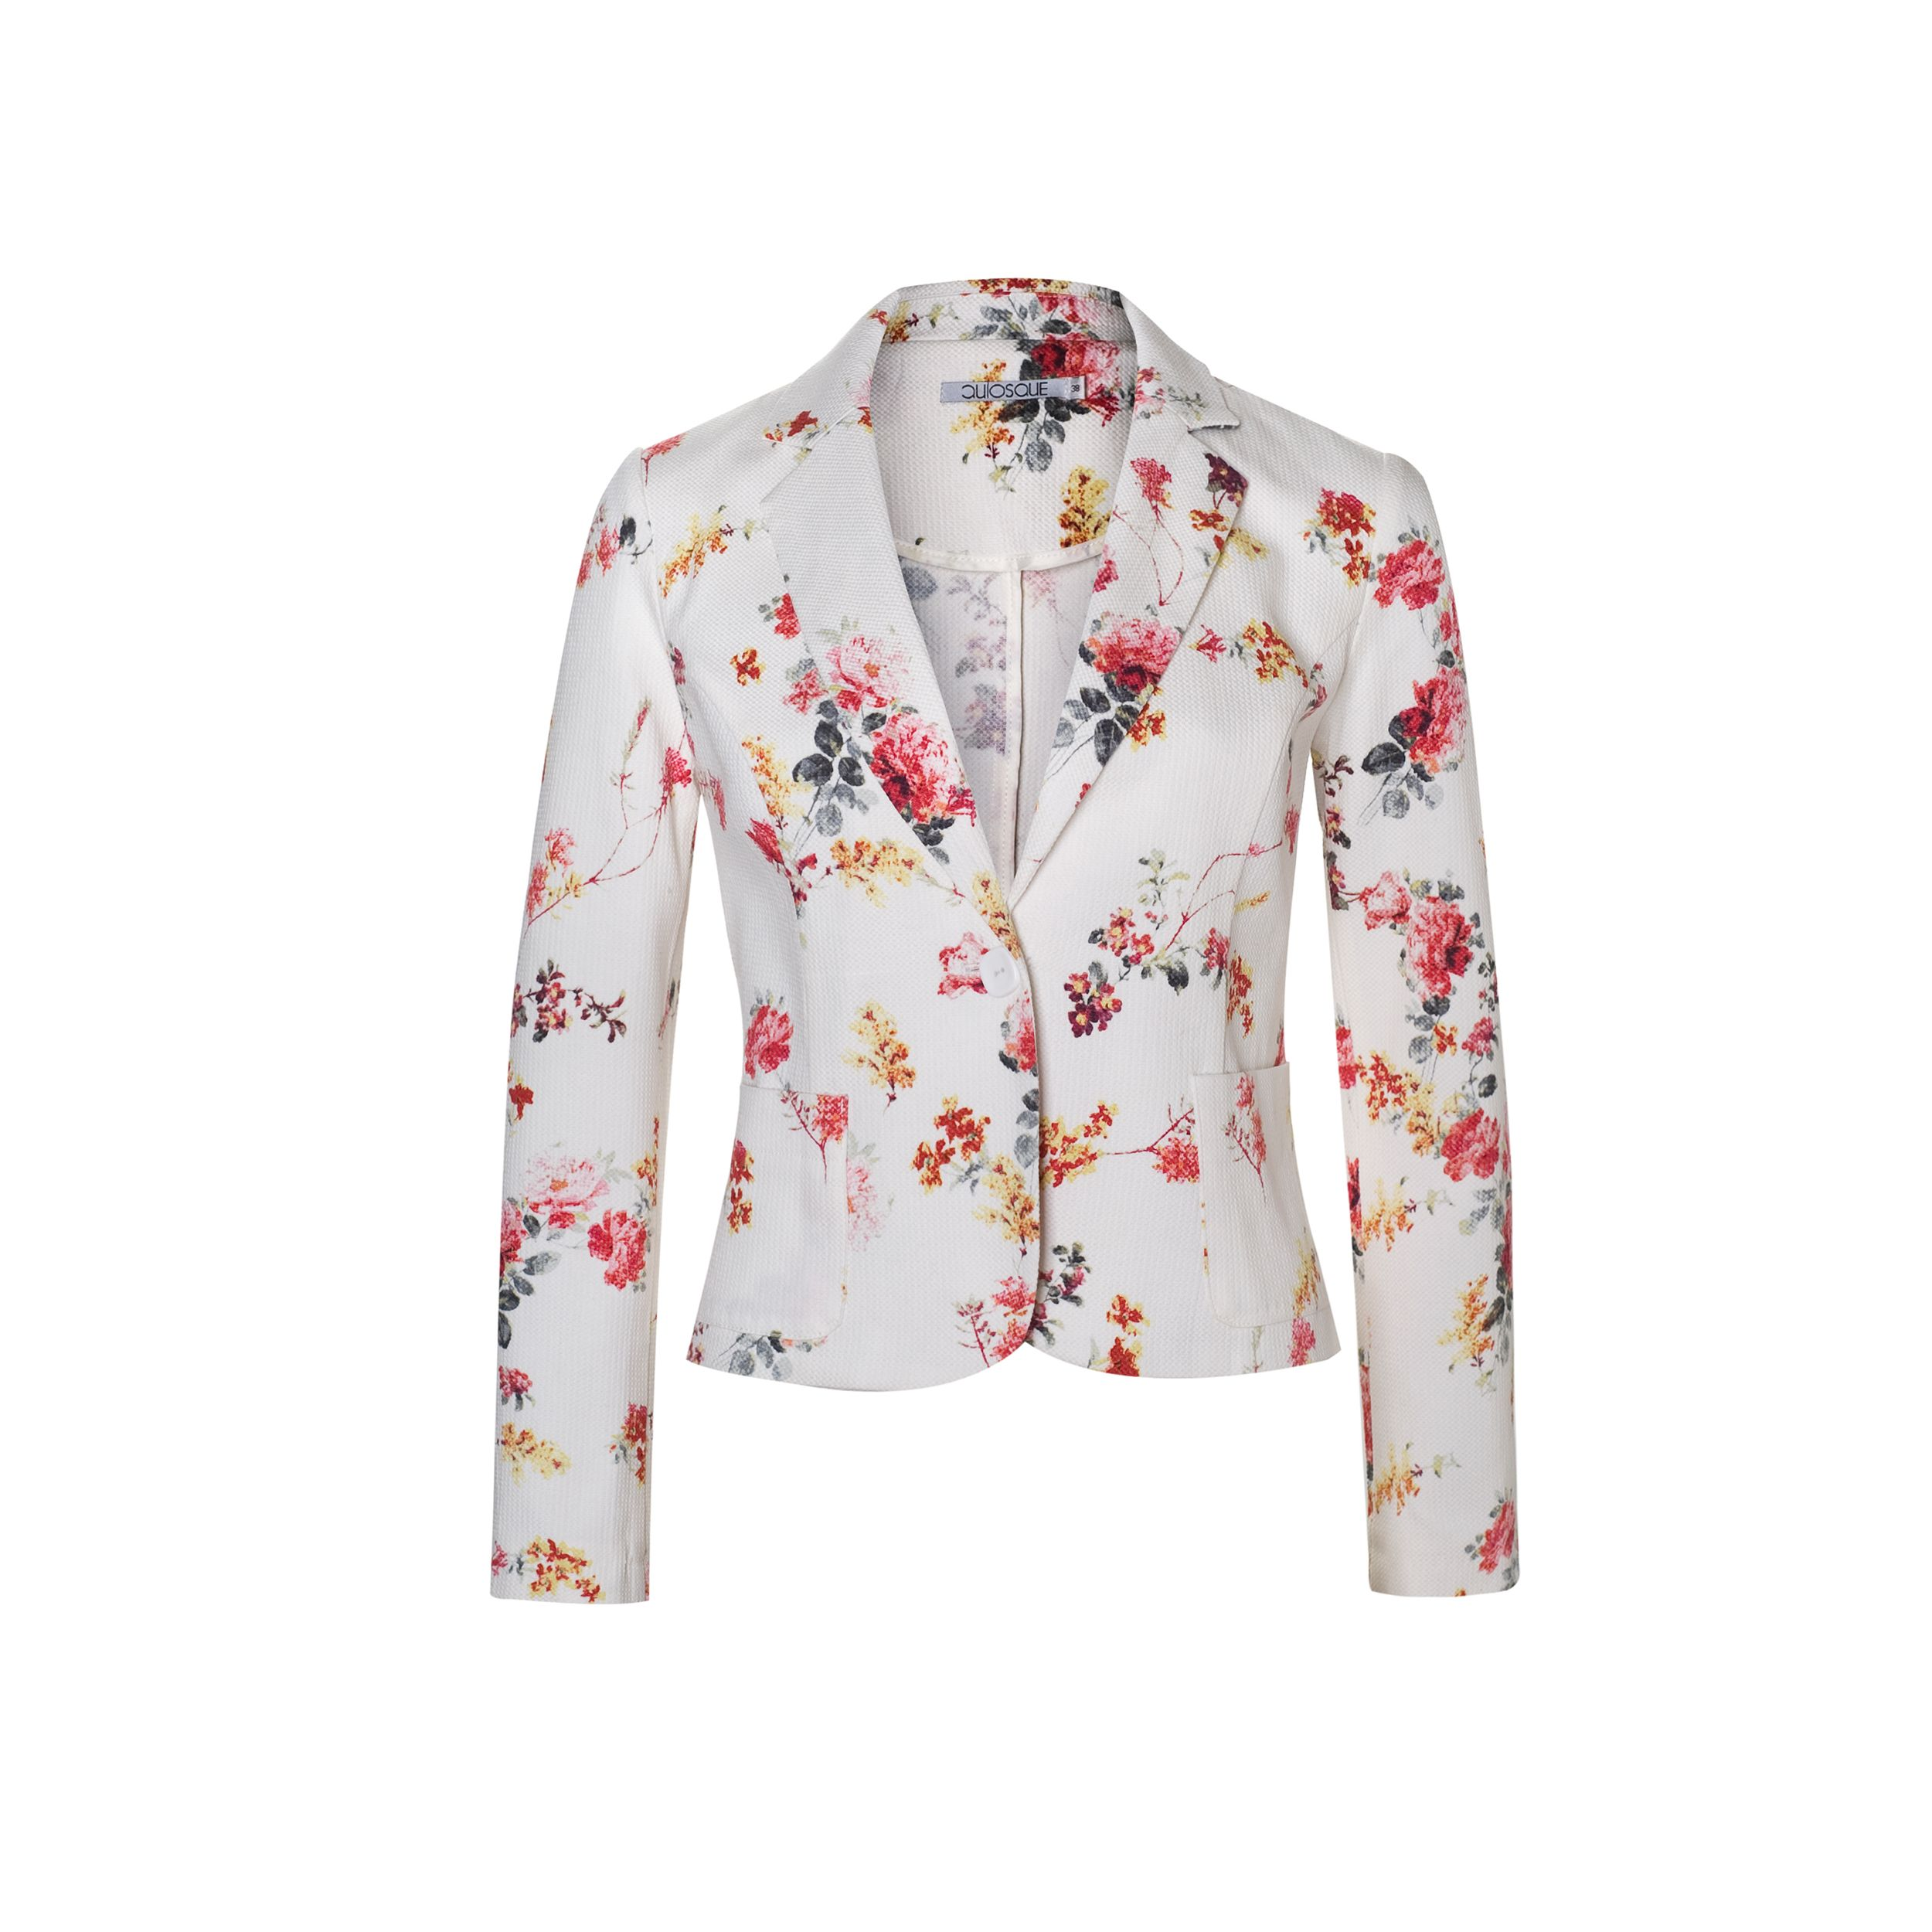 Wiosno Przybywaj Qsq Quiosquepl Ss15 New Collection Jacket Springtrends Musthave Newcollection Flowers Spring Trends Fashion Sleeve Top